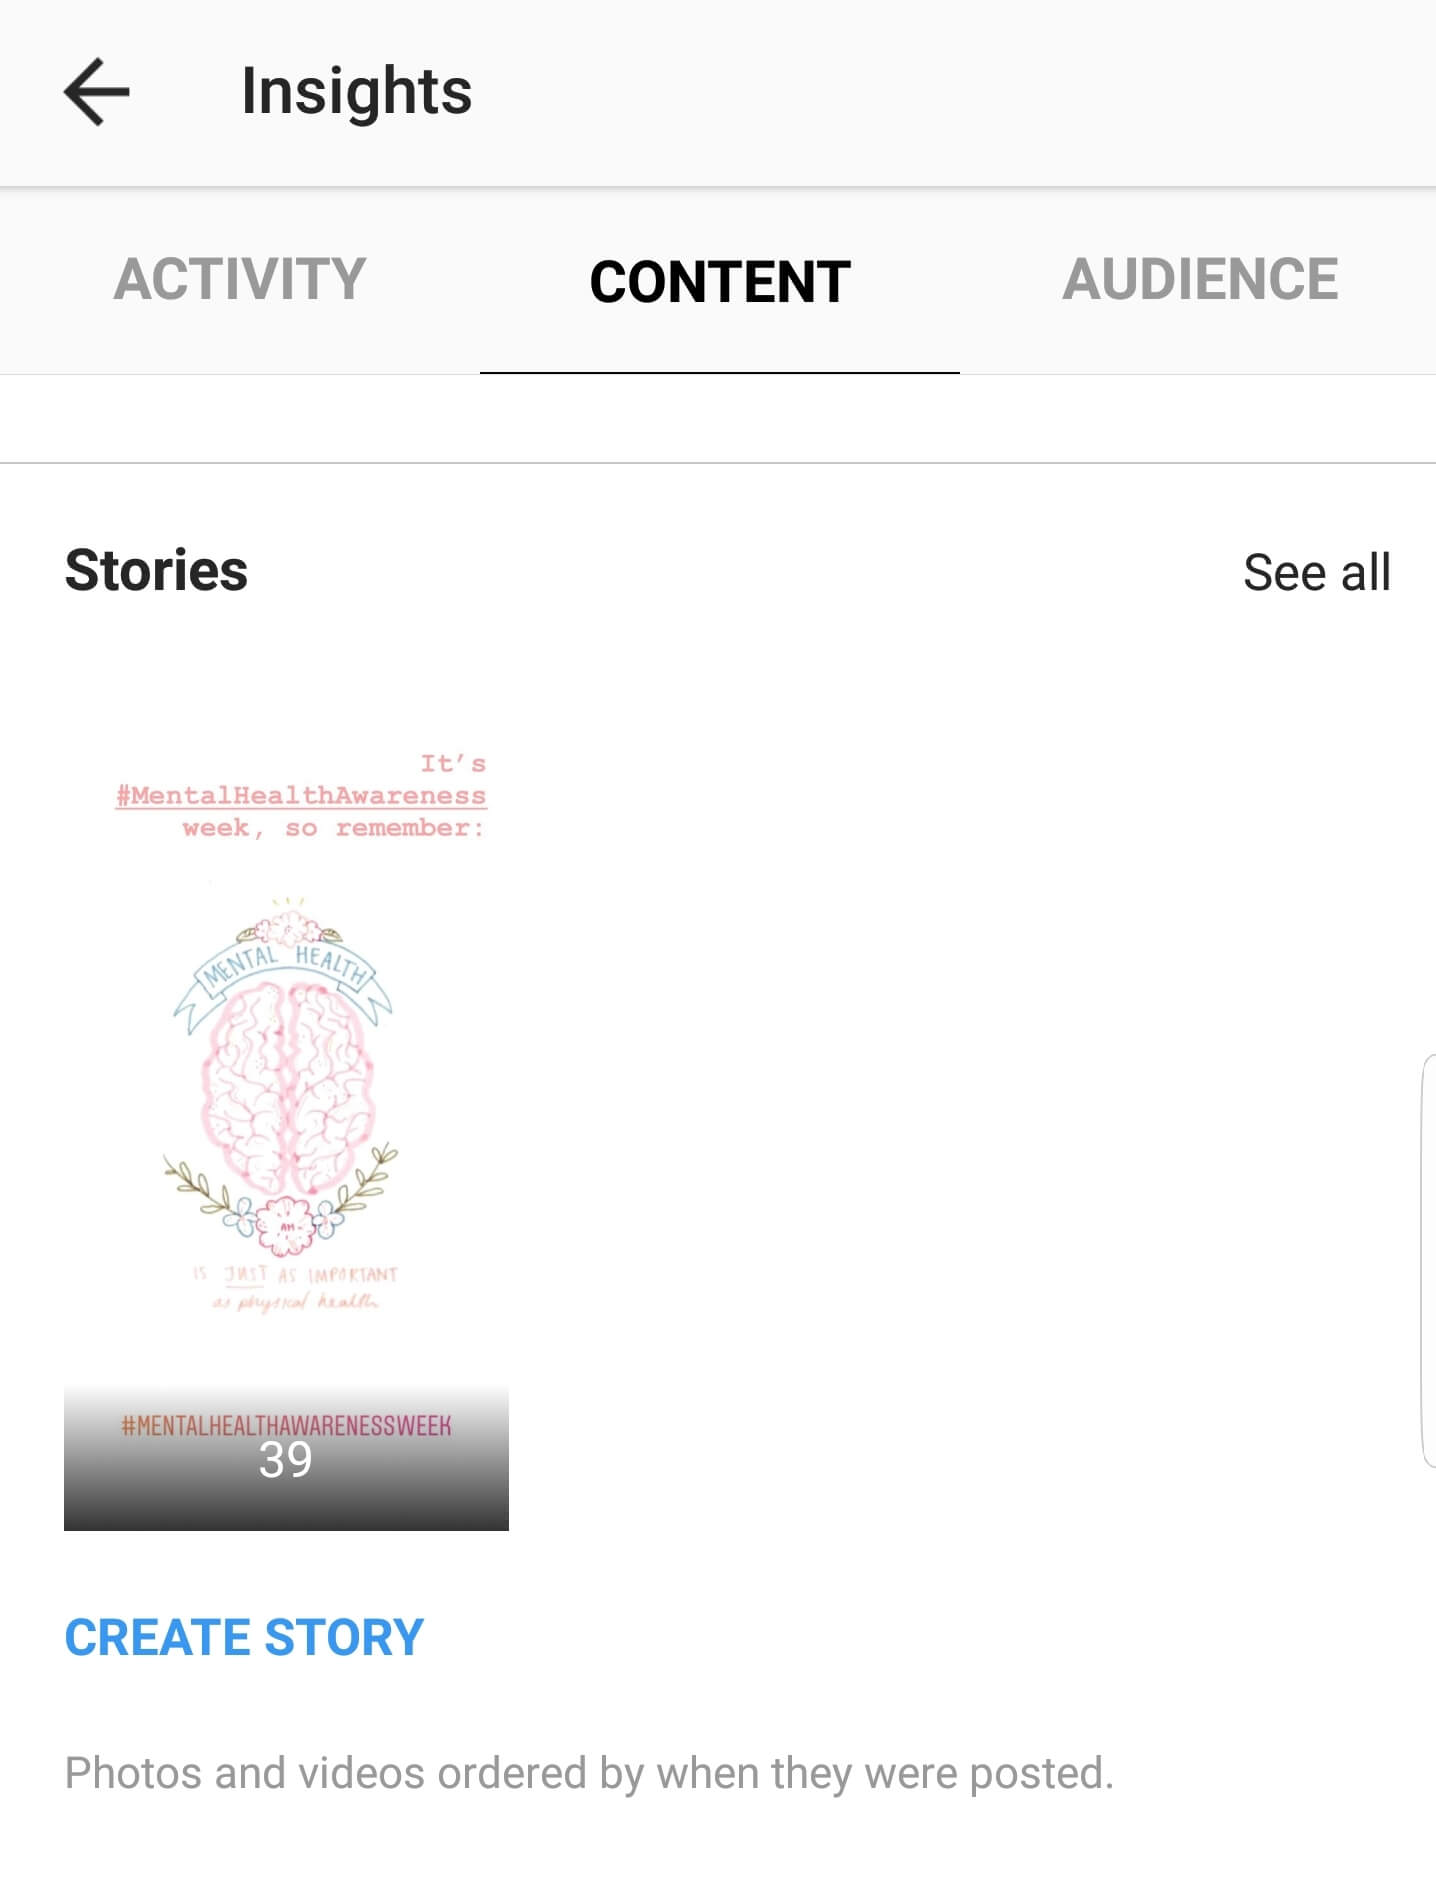 Instagram Insights: Content